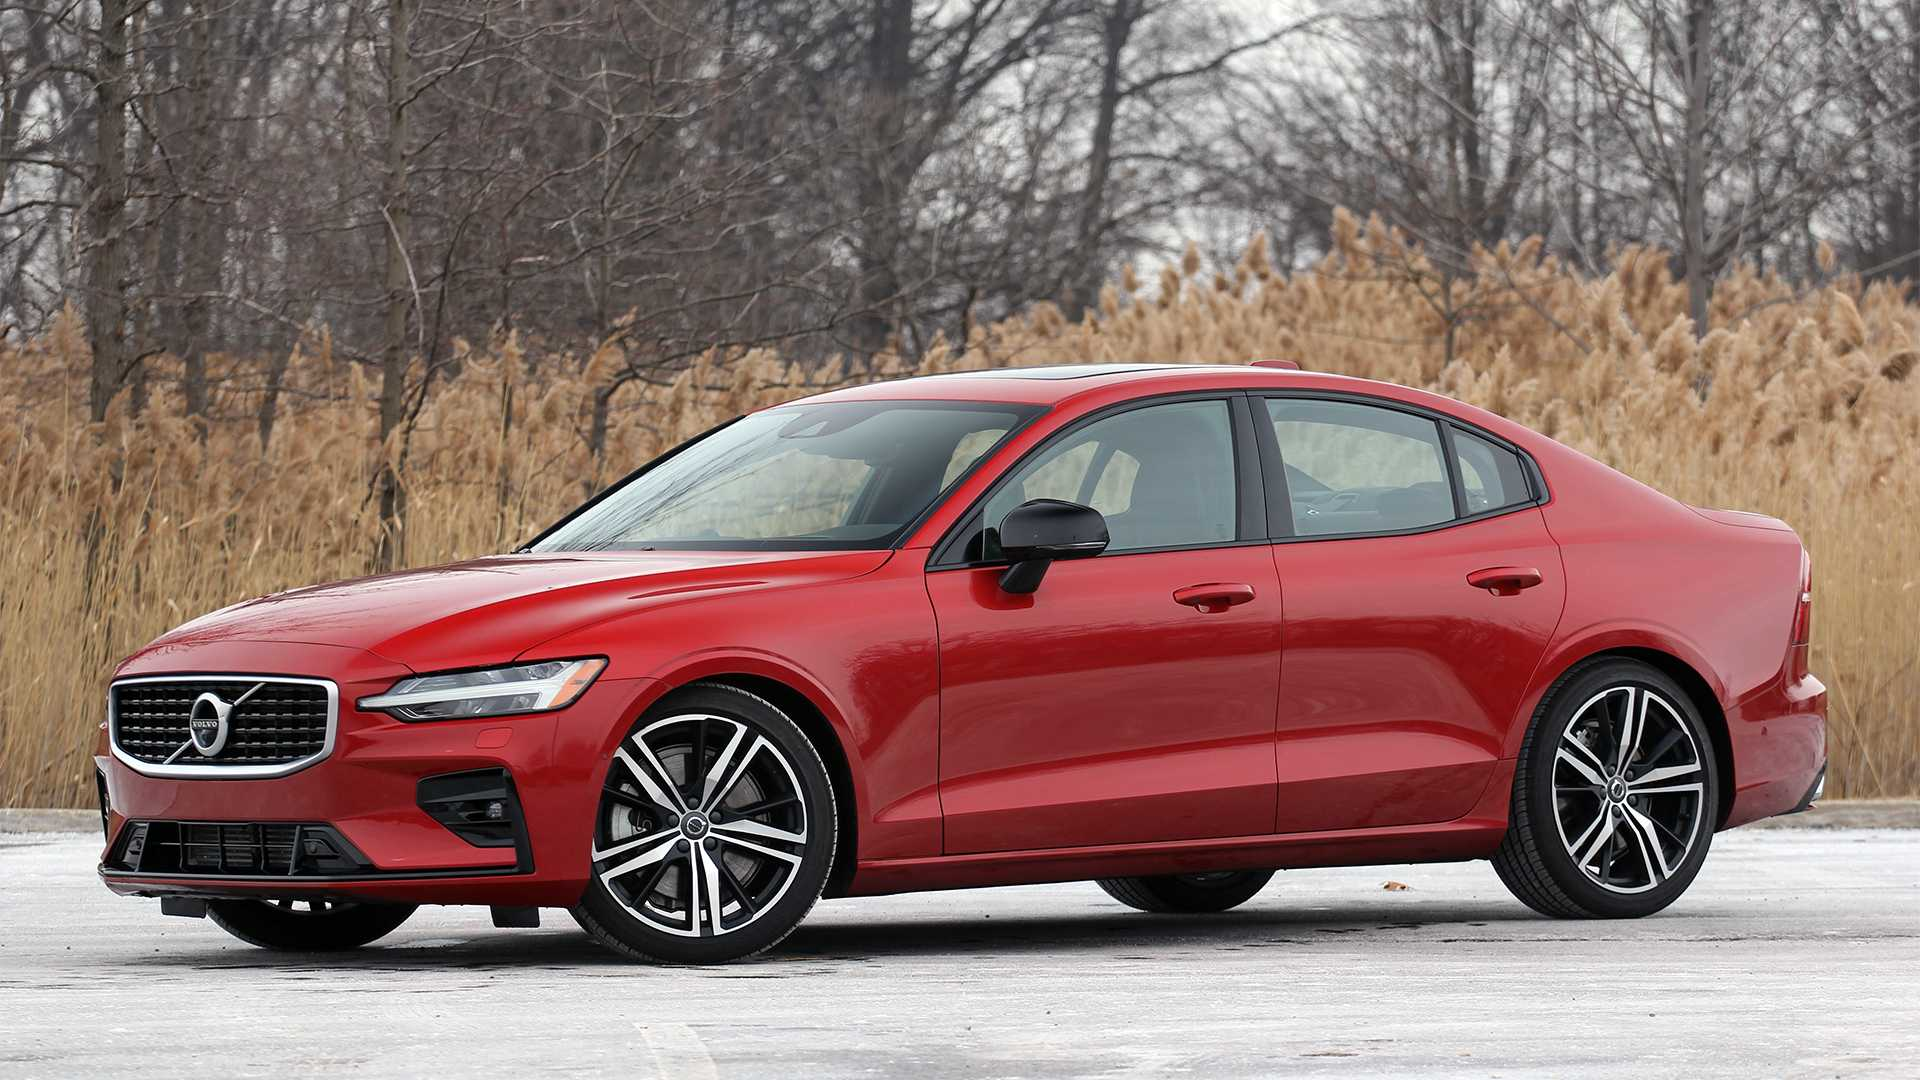 66 All New 2019 Volvo S60 Redesign Model